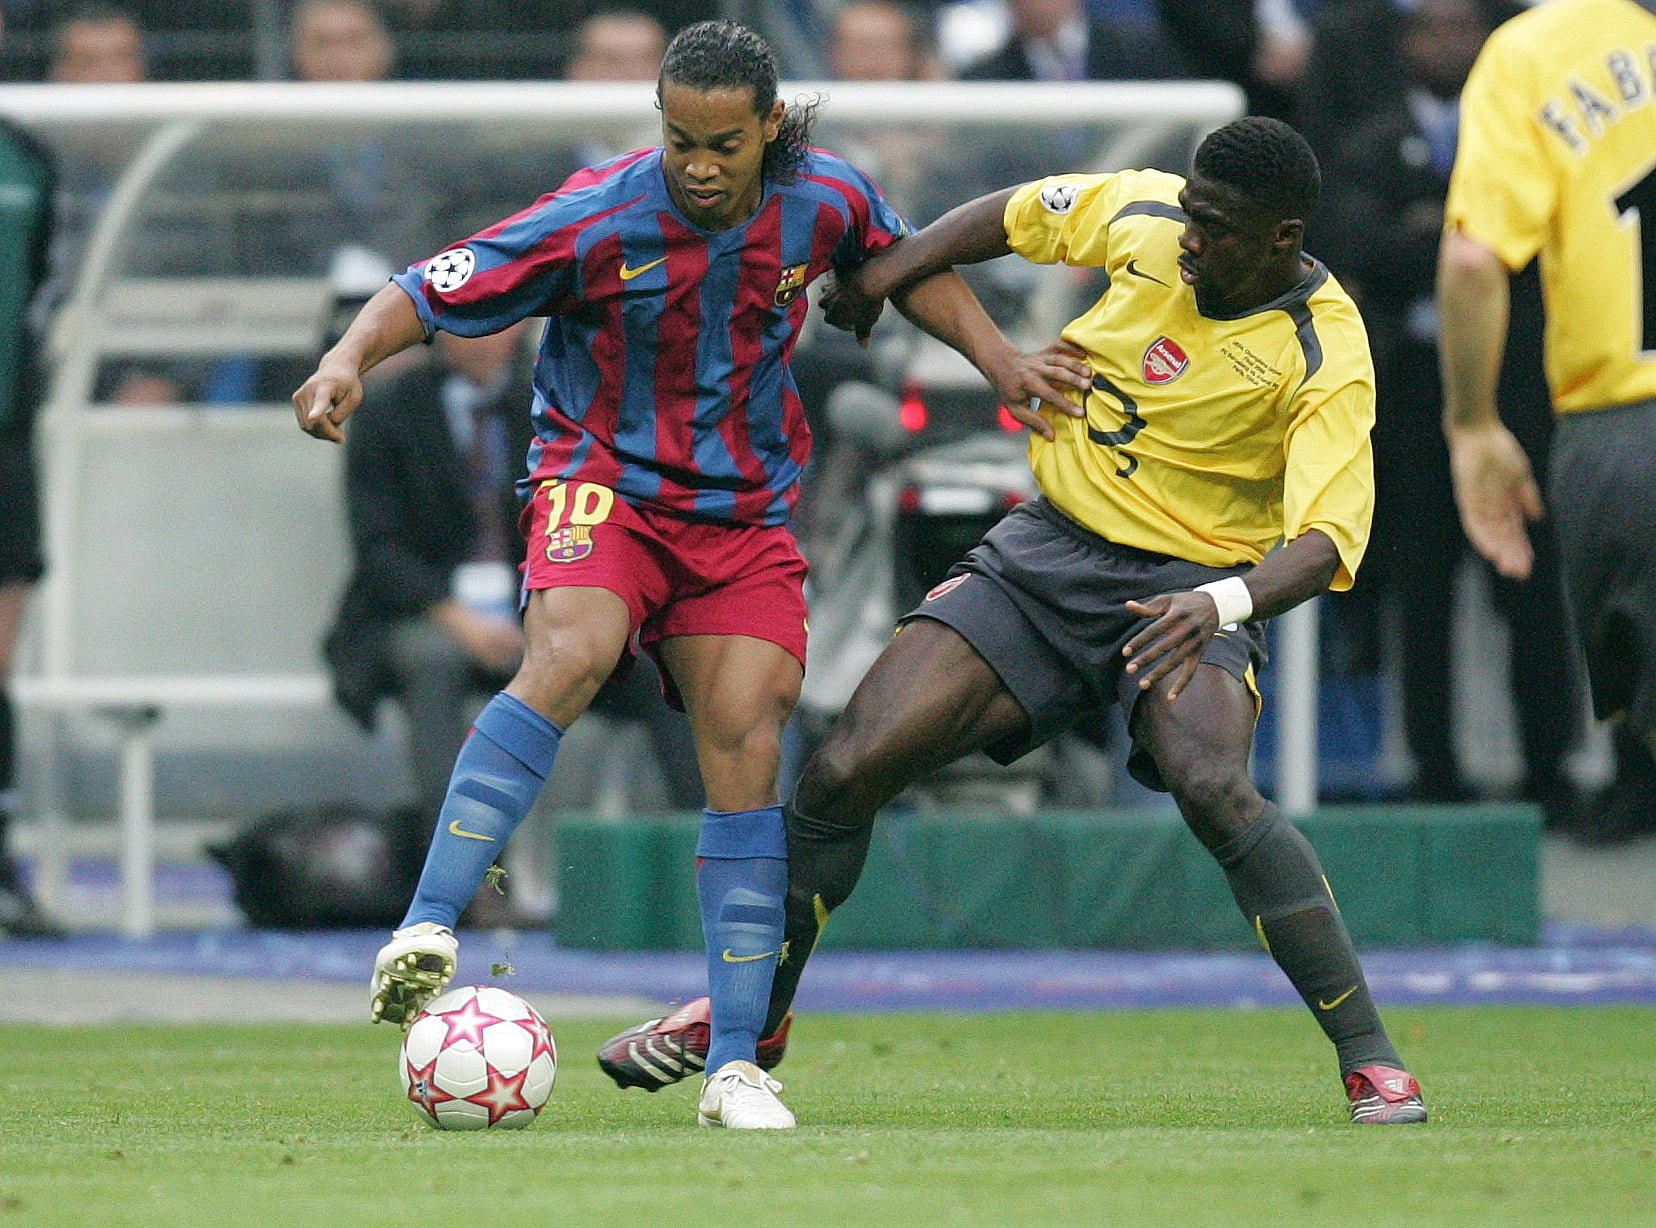 RONALDINHO, KOLO TOURE FC BARCELONA - ARSENAL LONDYN FC 2-1 PILKA NOZNA, FINAL LIGI MISTRSZOW UEFA (CHAMPIONS LEAGUE FINAL) PARYZ 17.05.2006 - STADE DE FRANCE (SAINT - DENIS) FOTO LUKASZ GROCHALA - AGENCJA PRZEGLAD SPORTOWY / FRANCJA --- Newspix.pl *** Local Caption *** www.newspix.pl mail us: info@newspix.pl call us: 0048 022 23 22 222 --- Polish Picture Agency by Axel Springer Poland